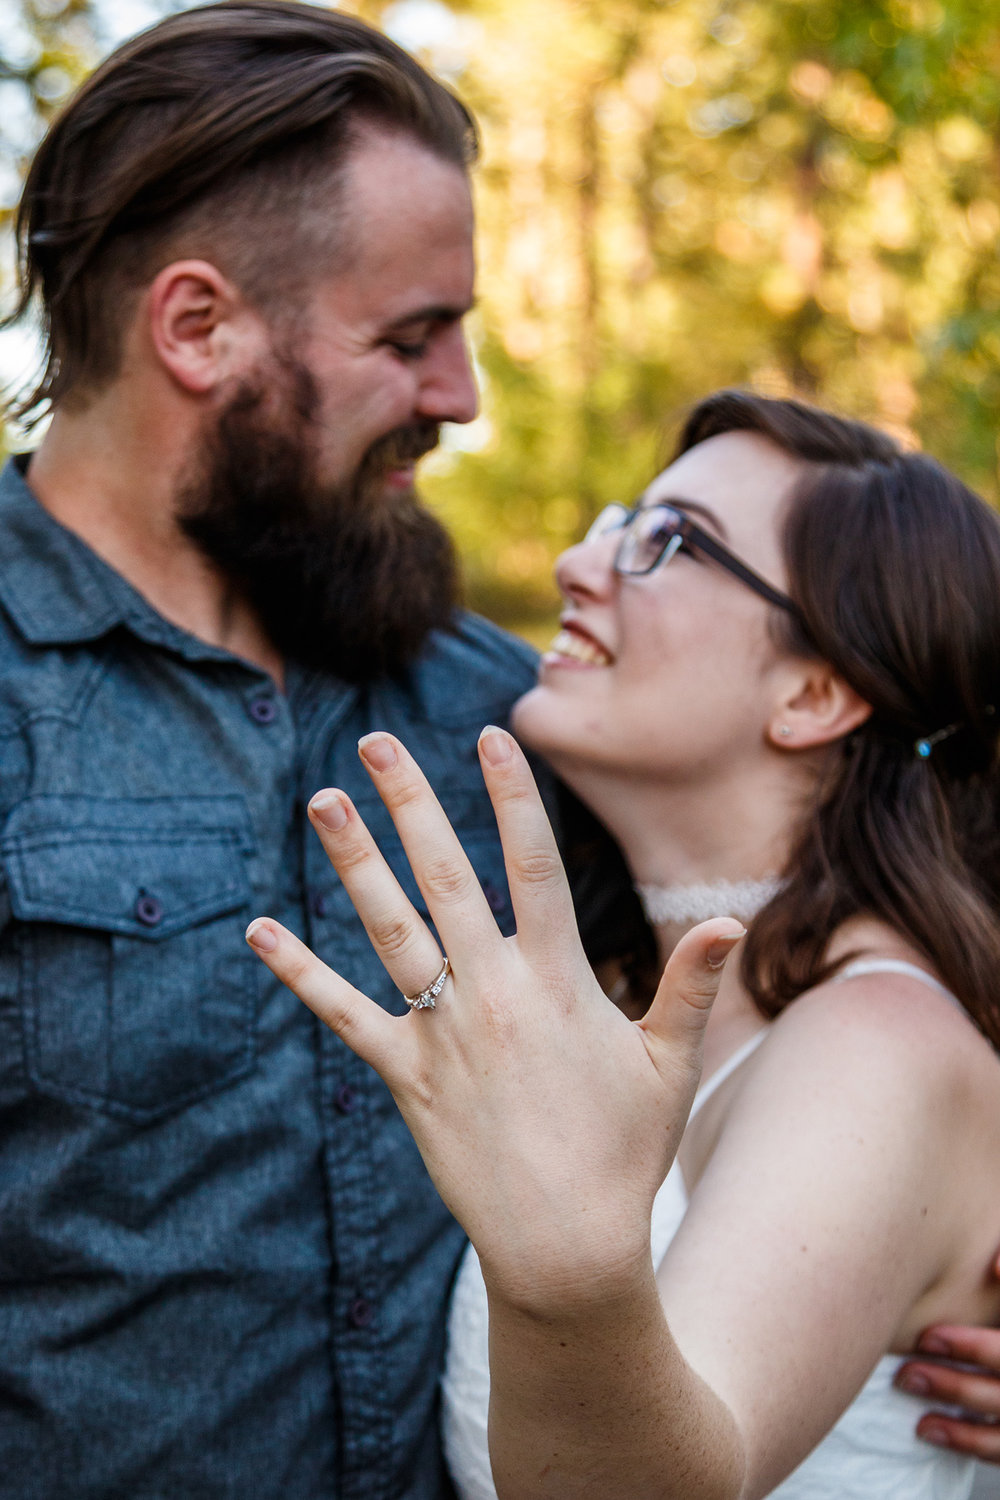 Jon & Ashley Engagement Session-20180602_084.jpg